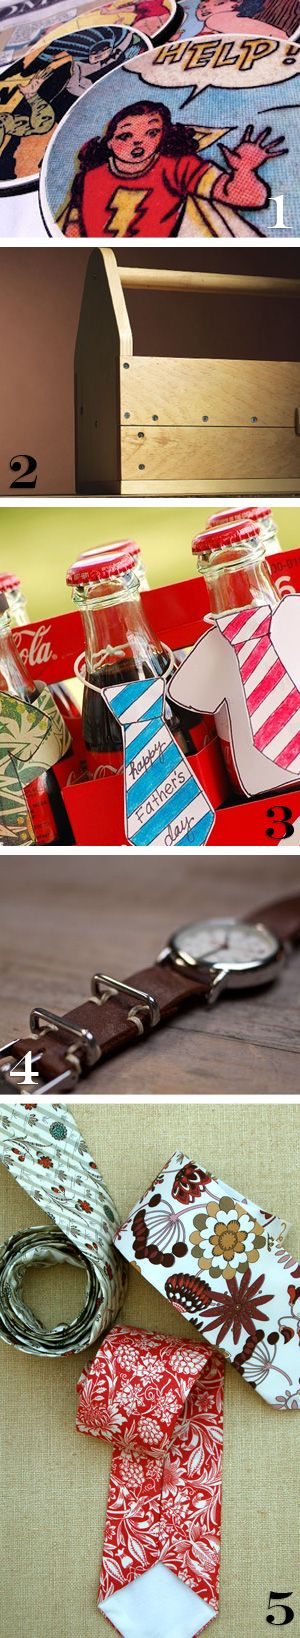 awesome fathers dad day gifts, coasters, tool box, coke, cola, watch band, ties, DIY how to instructions for each one.